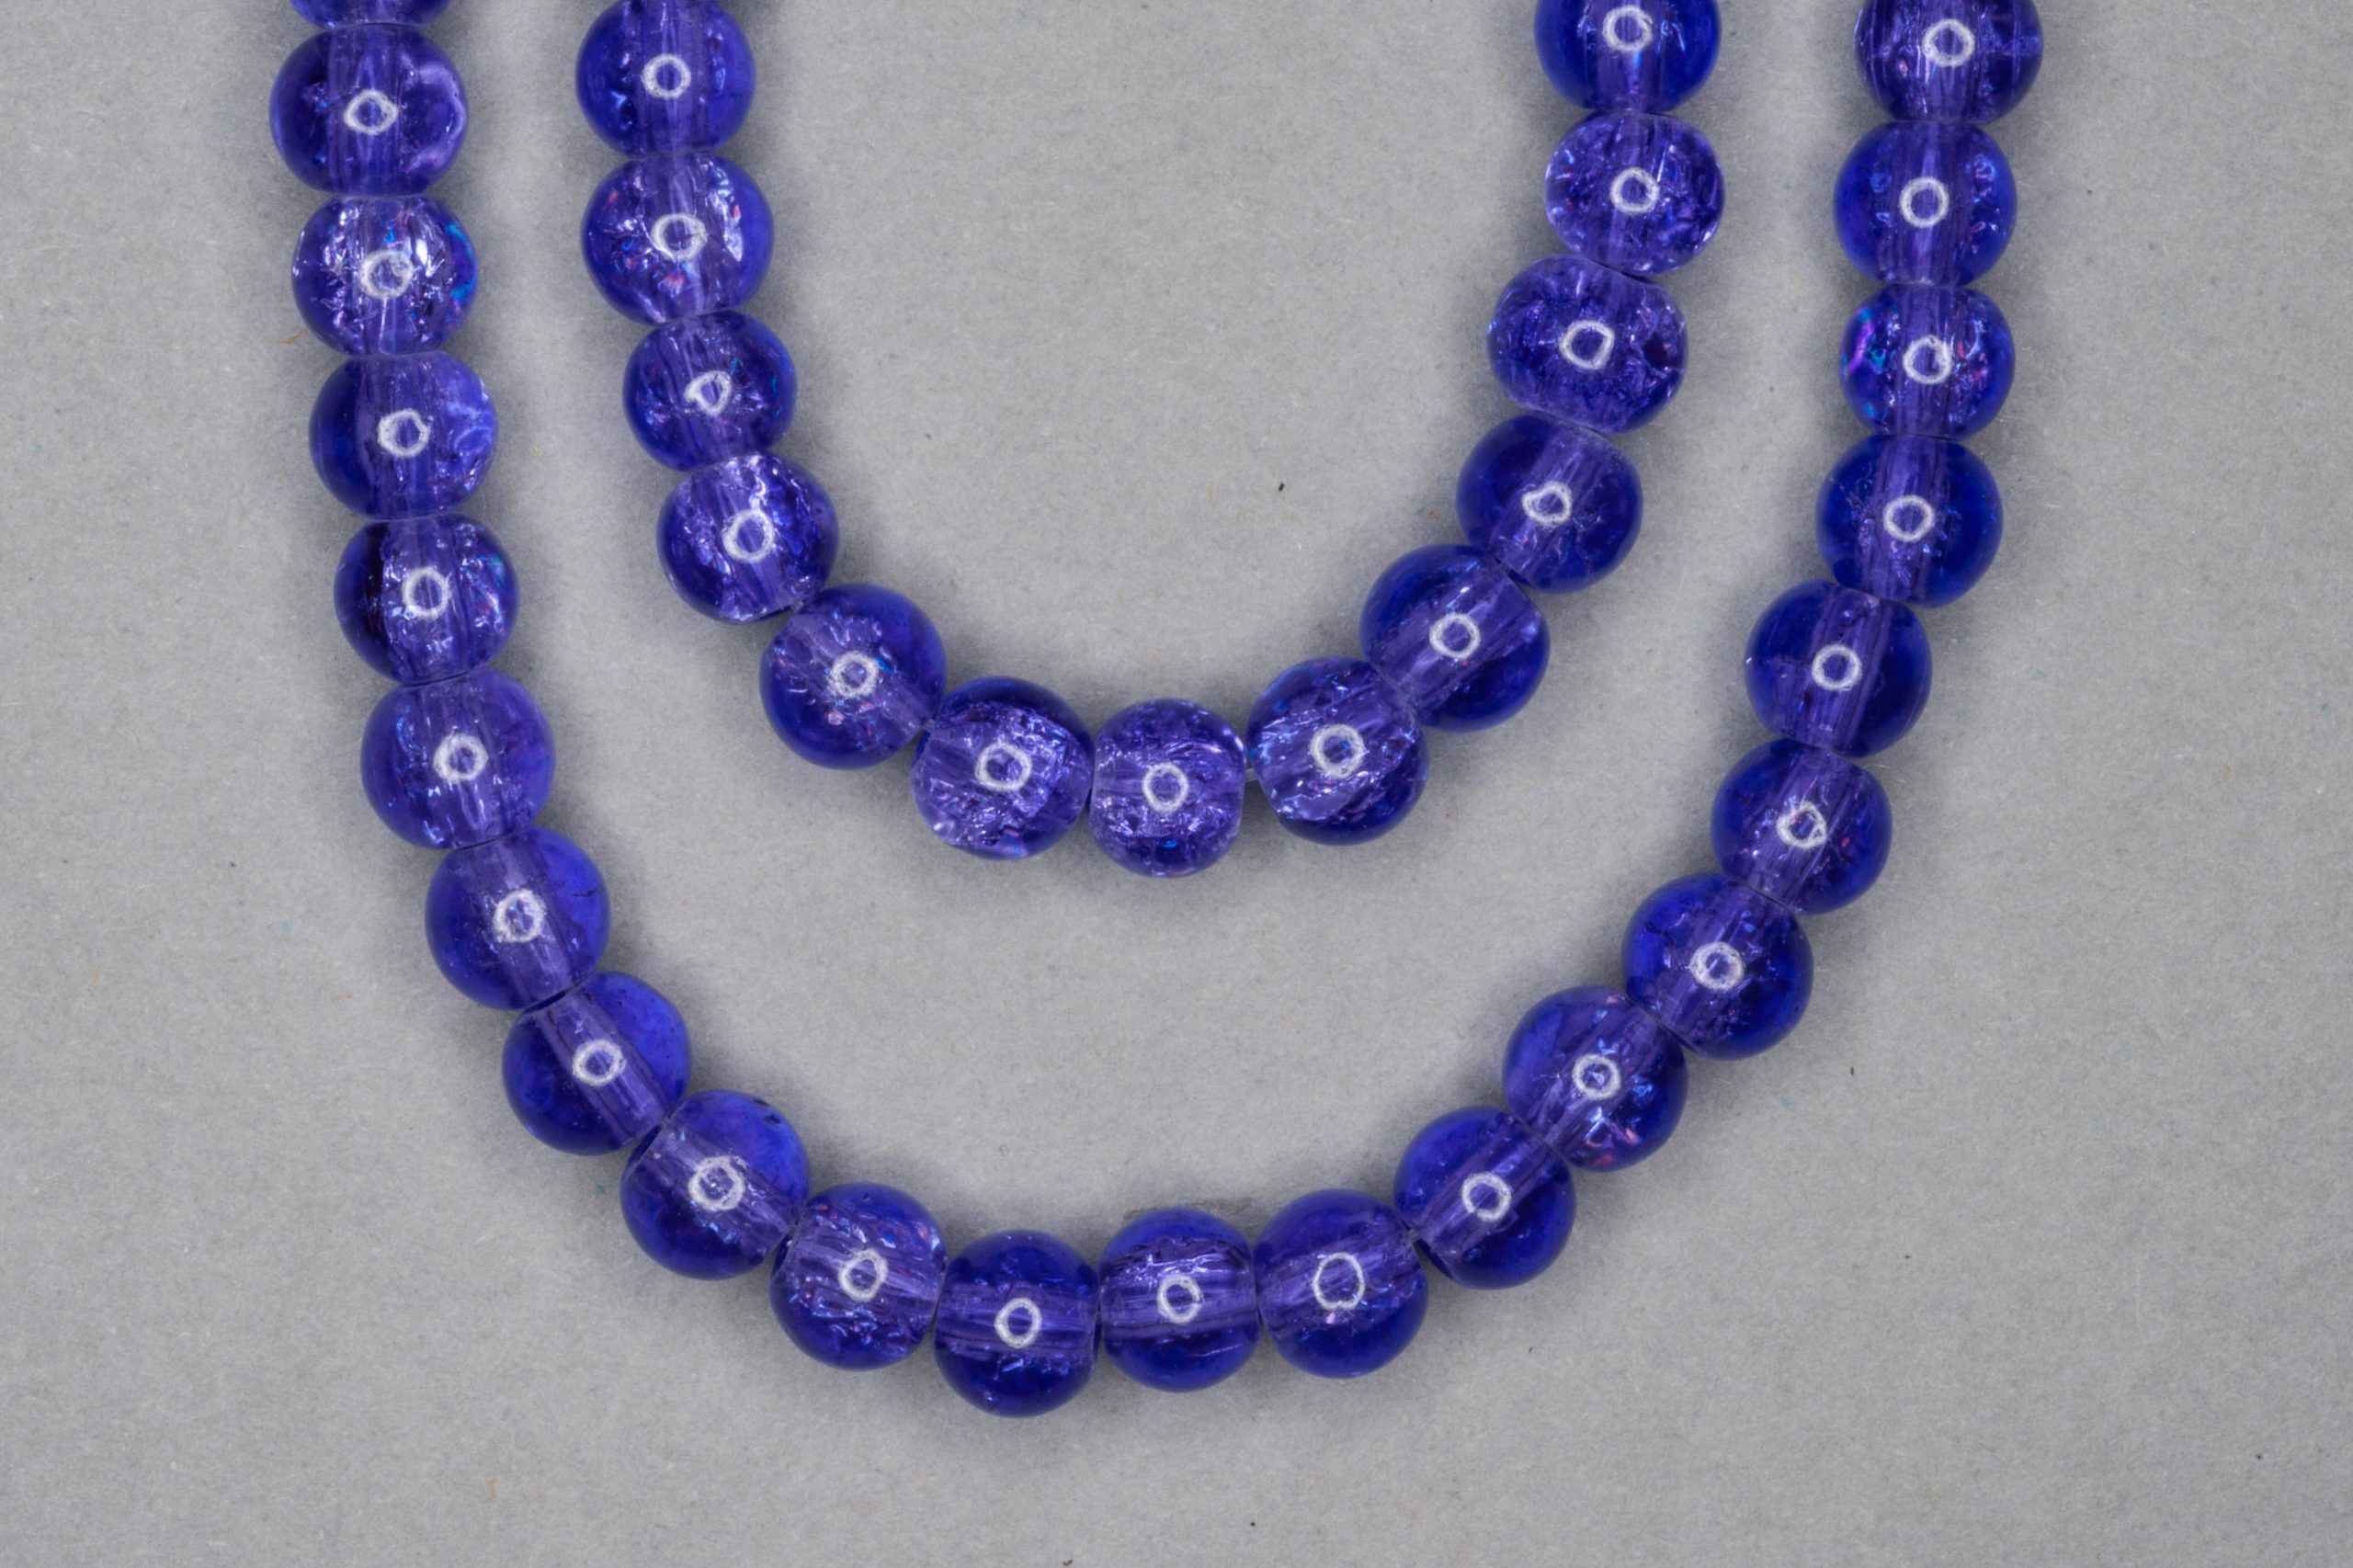 Amethyst Crackle Glass Beads